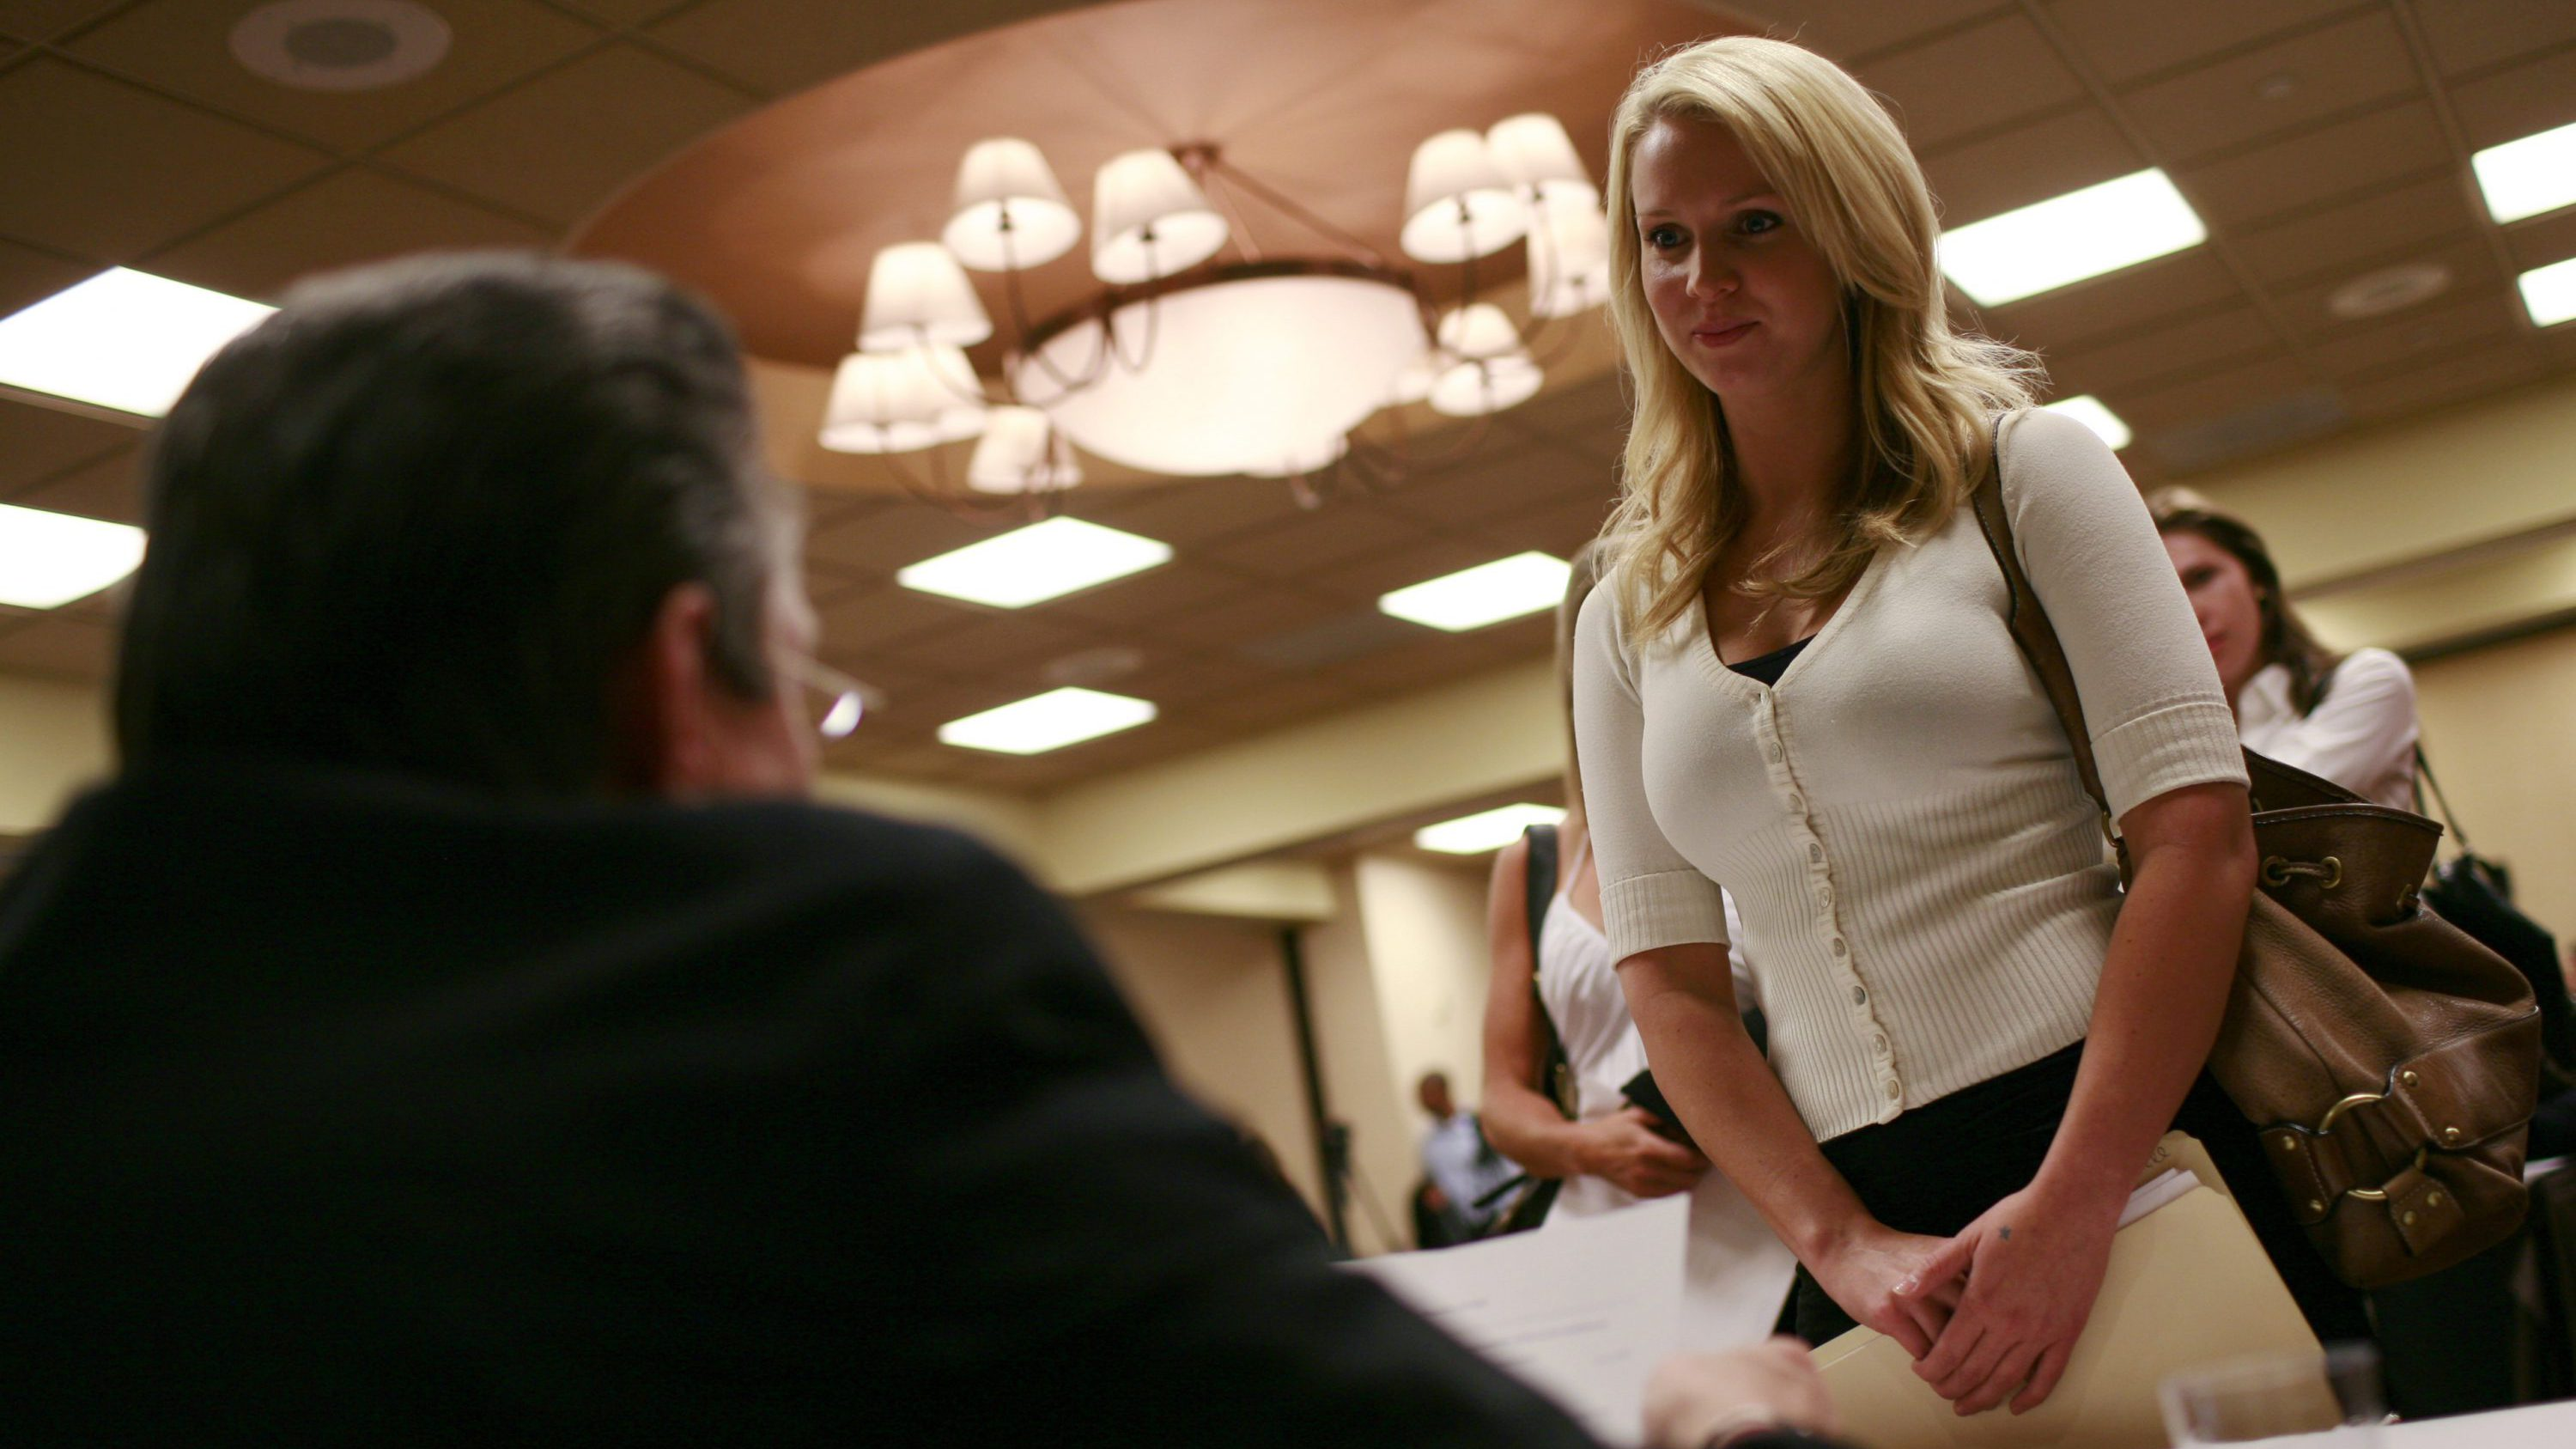 A recruiting representative from a night club greets a potential employee during a job fair in San Francisco, California, July 20, 2009. Hundreds of people applied for 30 jobs as bartenders, exotic dancers and waitresses at several San Francisco strip clubs.